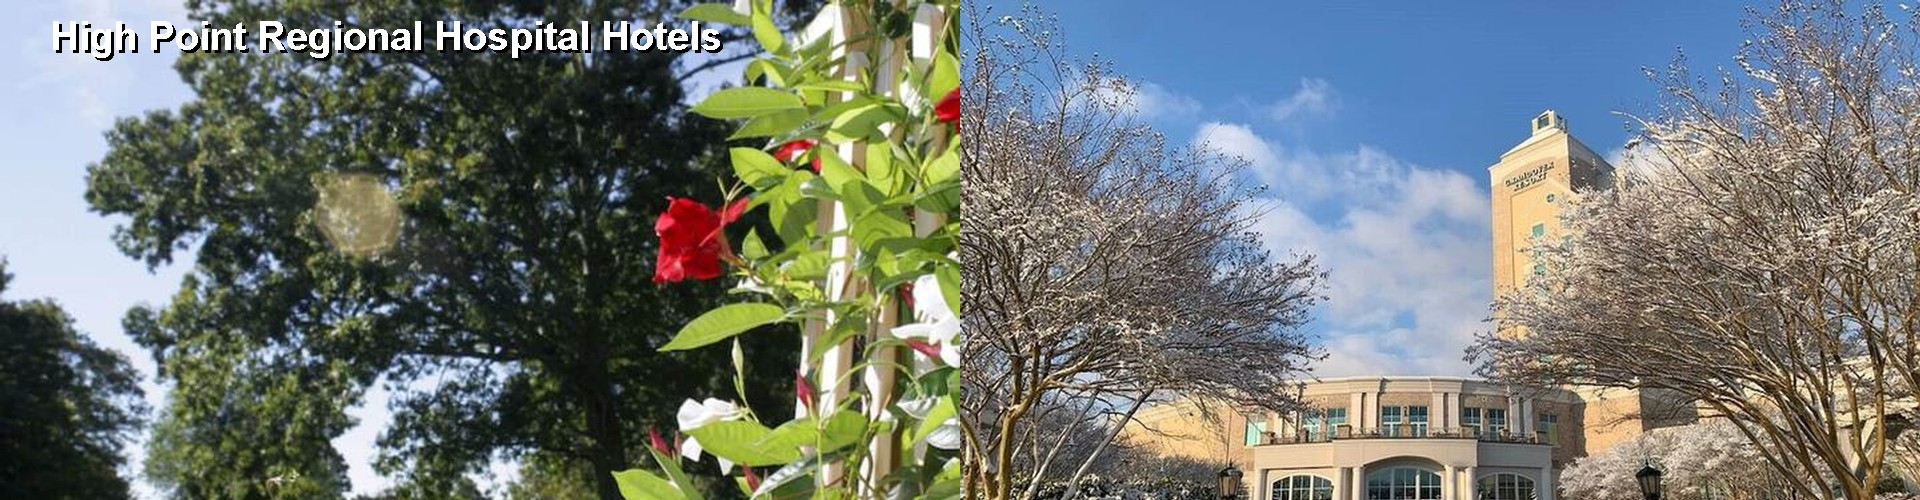 4 Best Hotels near High Point Regional Hospital